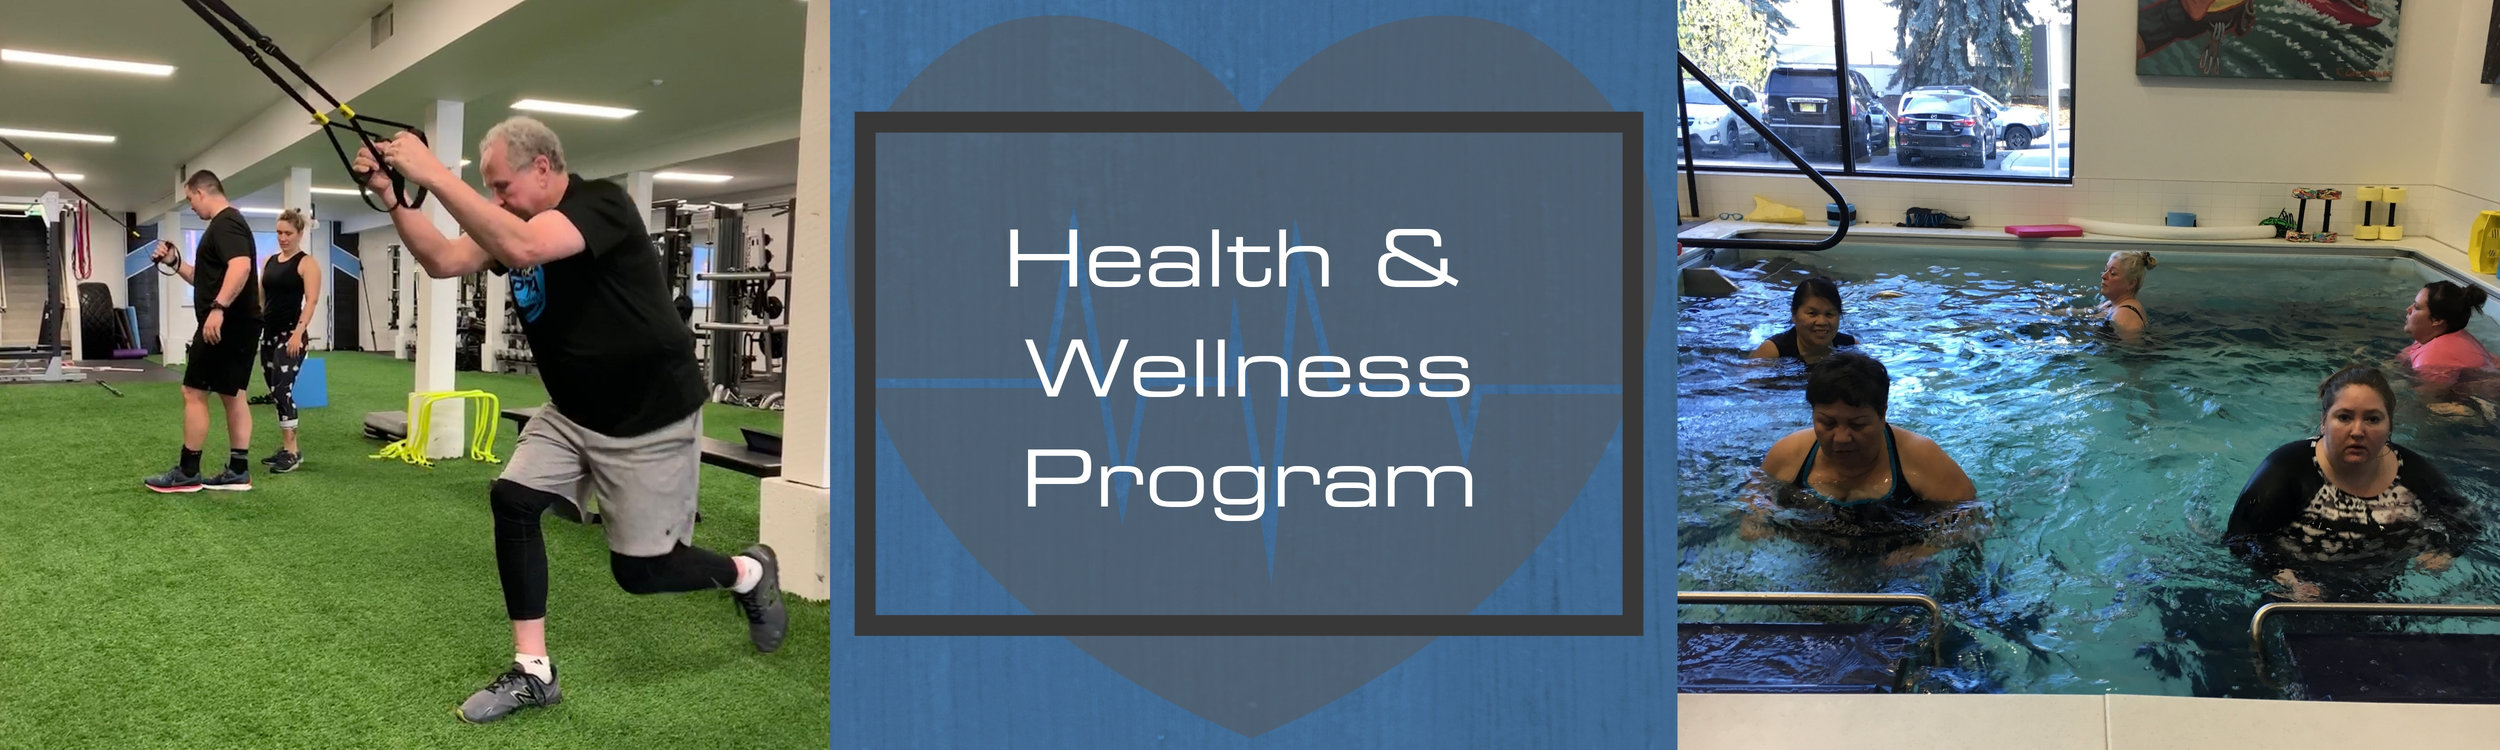 Website Pricing Banner- Health and Wellness Program.jpg